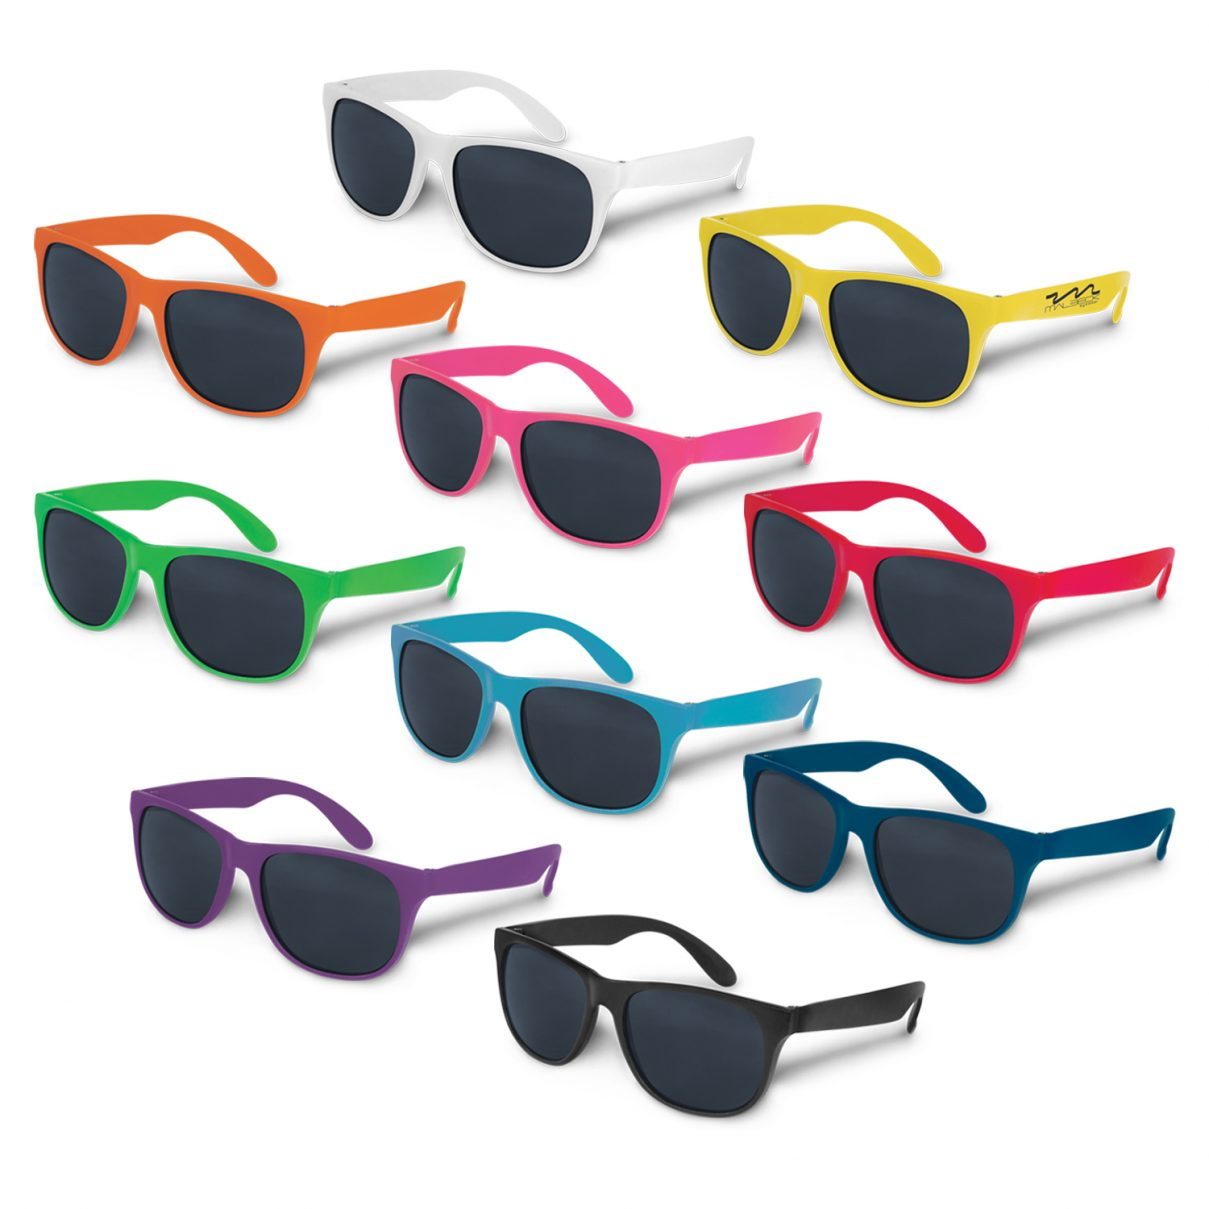 Malibu Basic Sunglasses Bulk Supplier